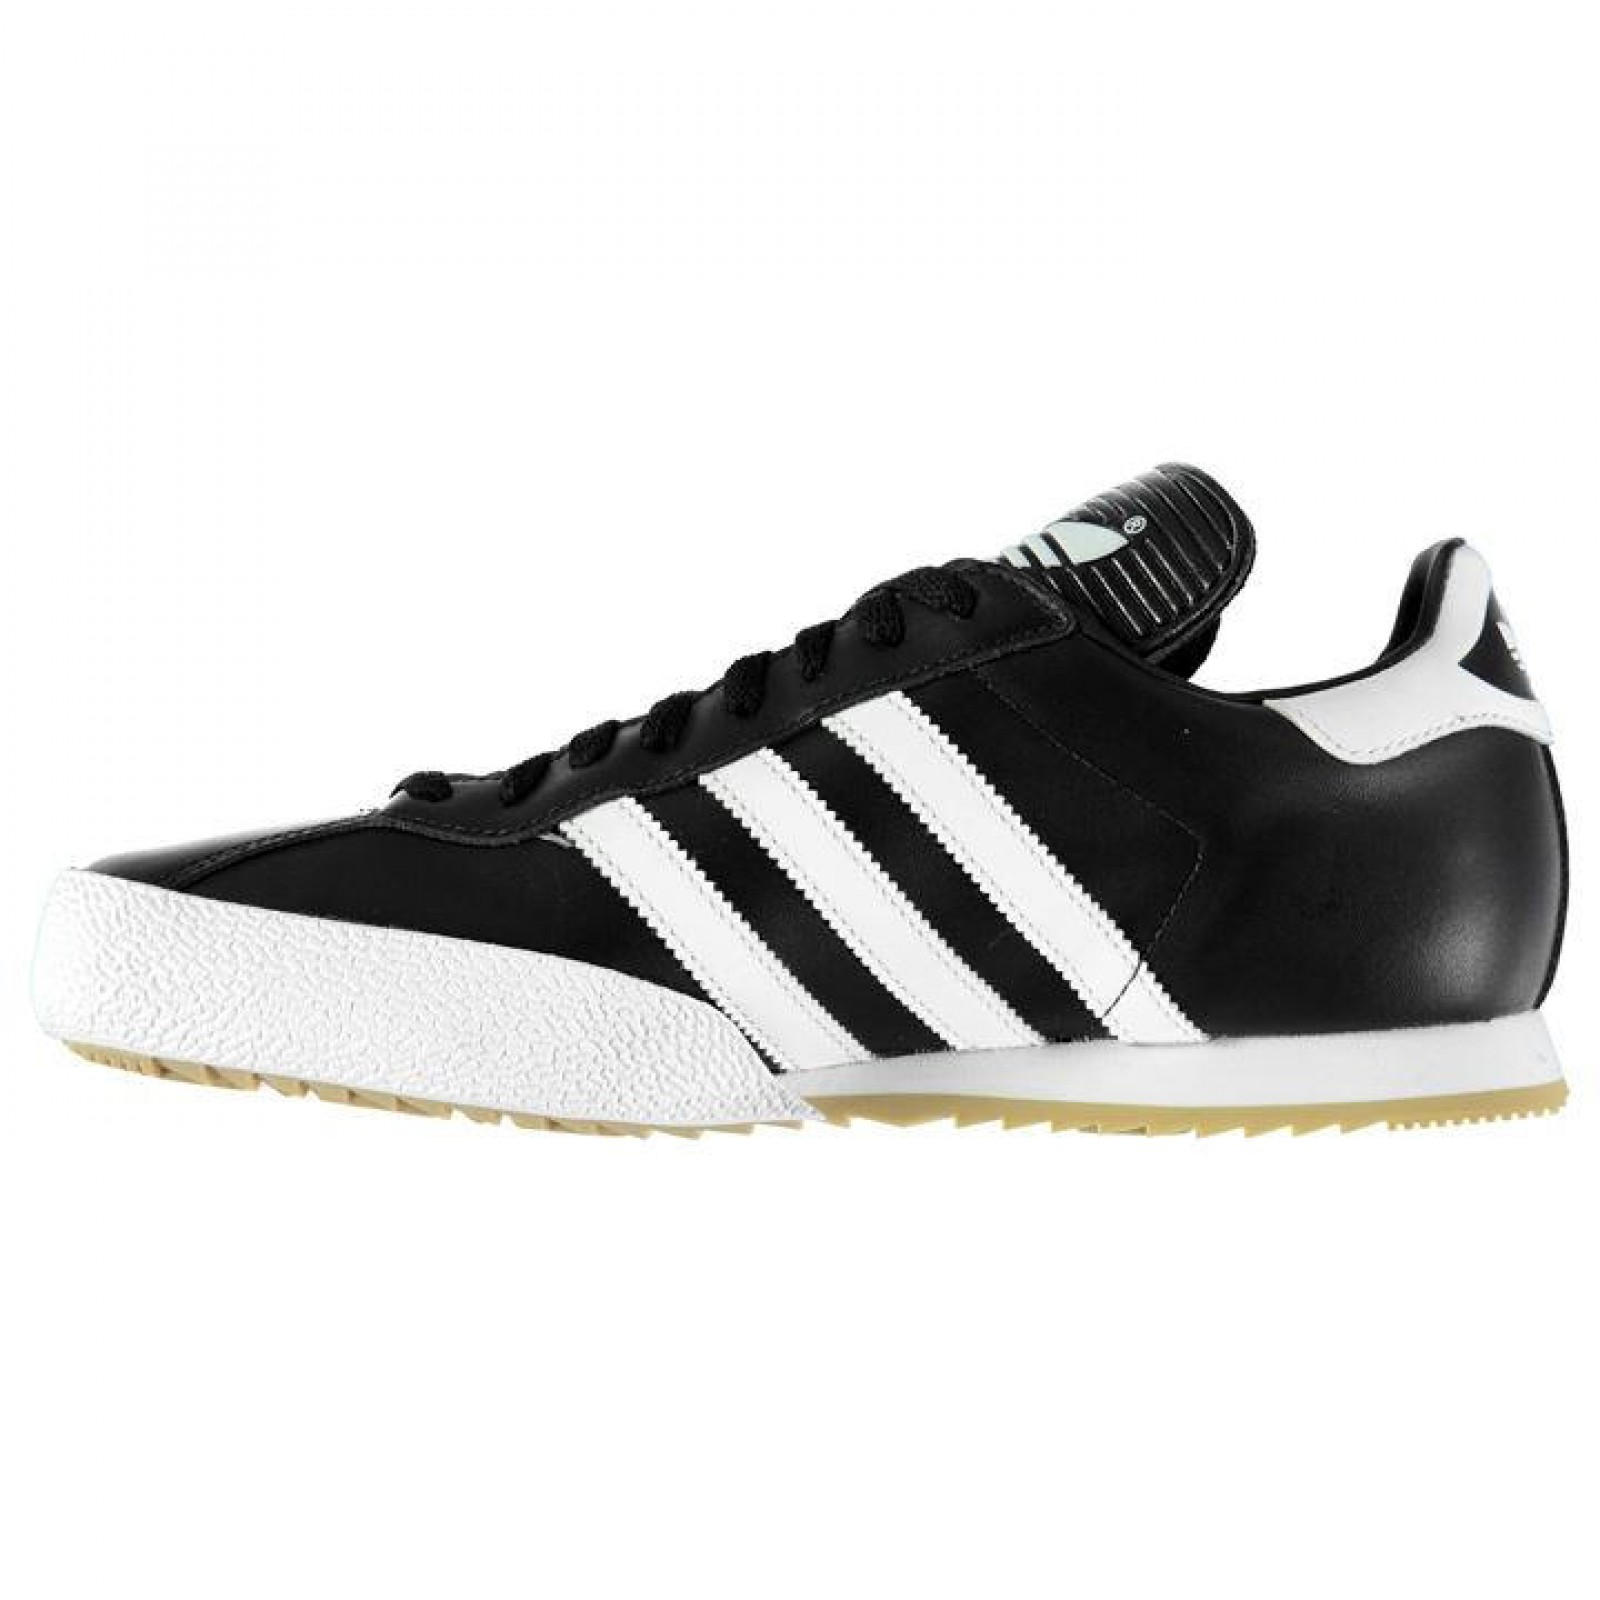 Adidas Samba Super Trainers